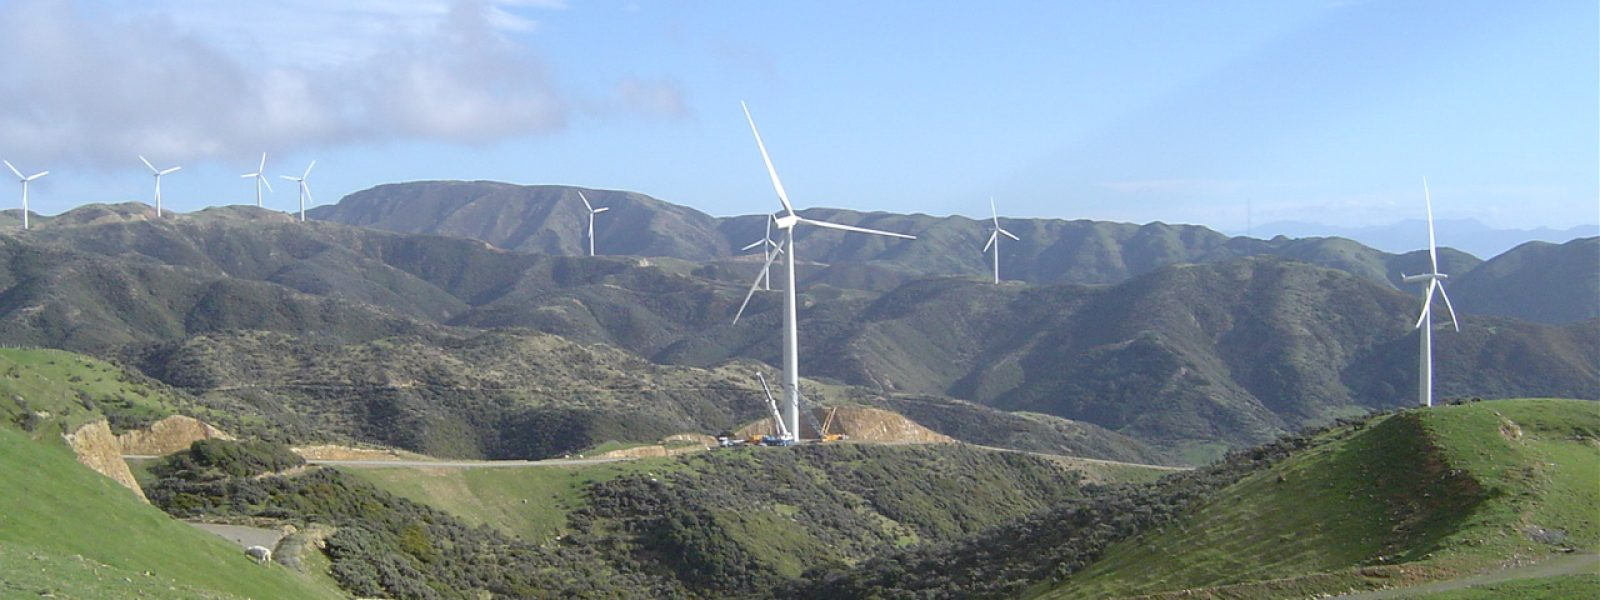 West Wind Farm Turbine Maintenance